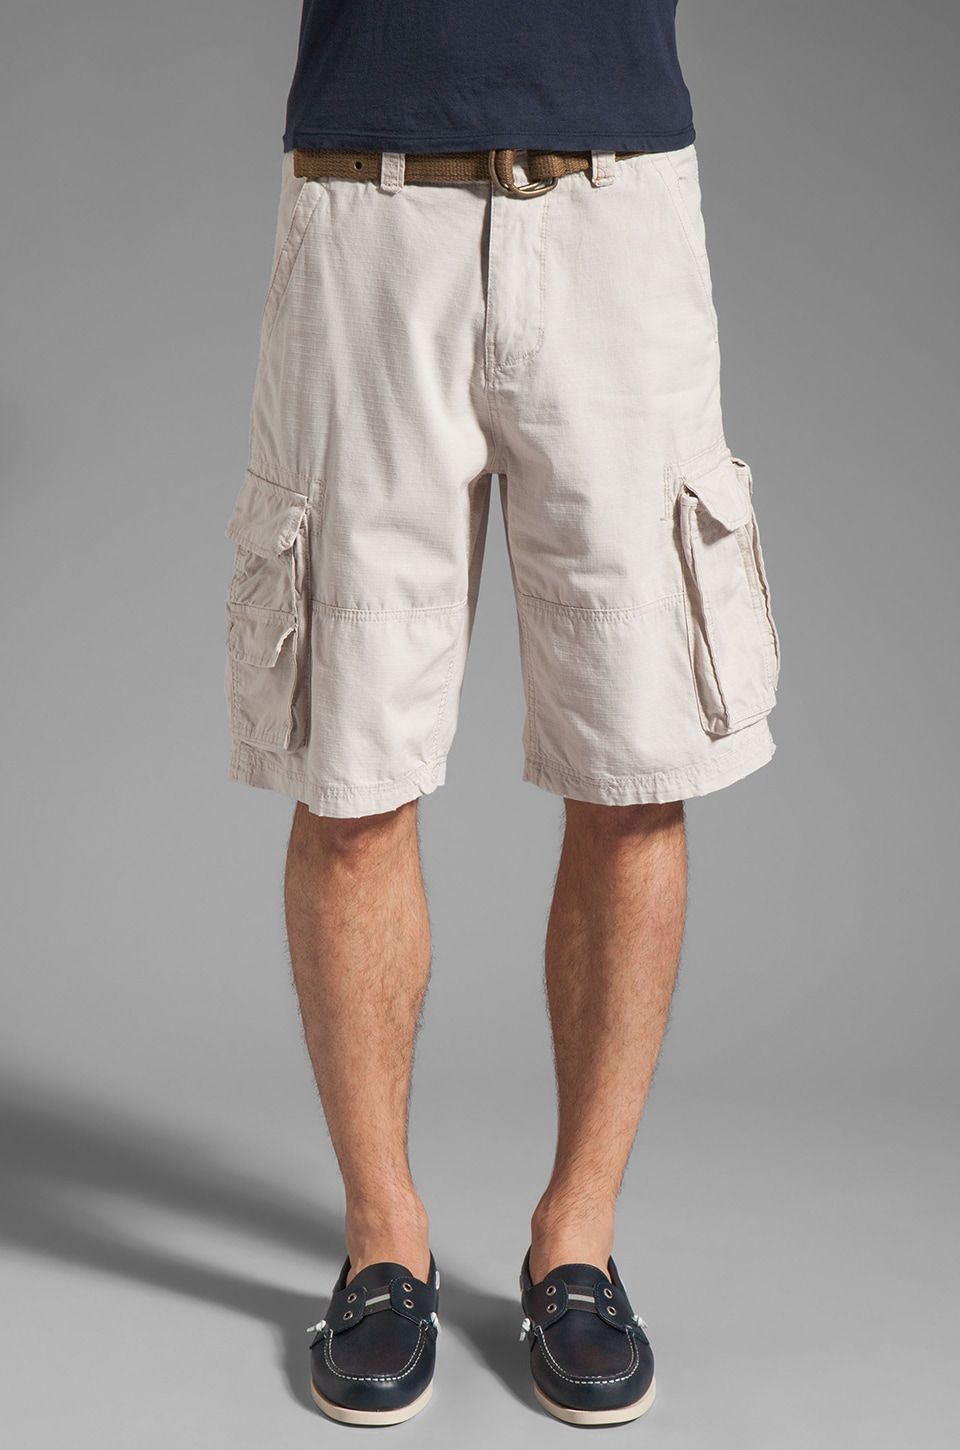 WRK Ripstop Cargo Short in Stone